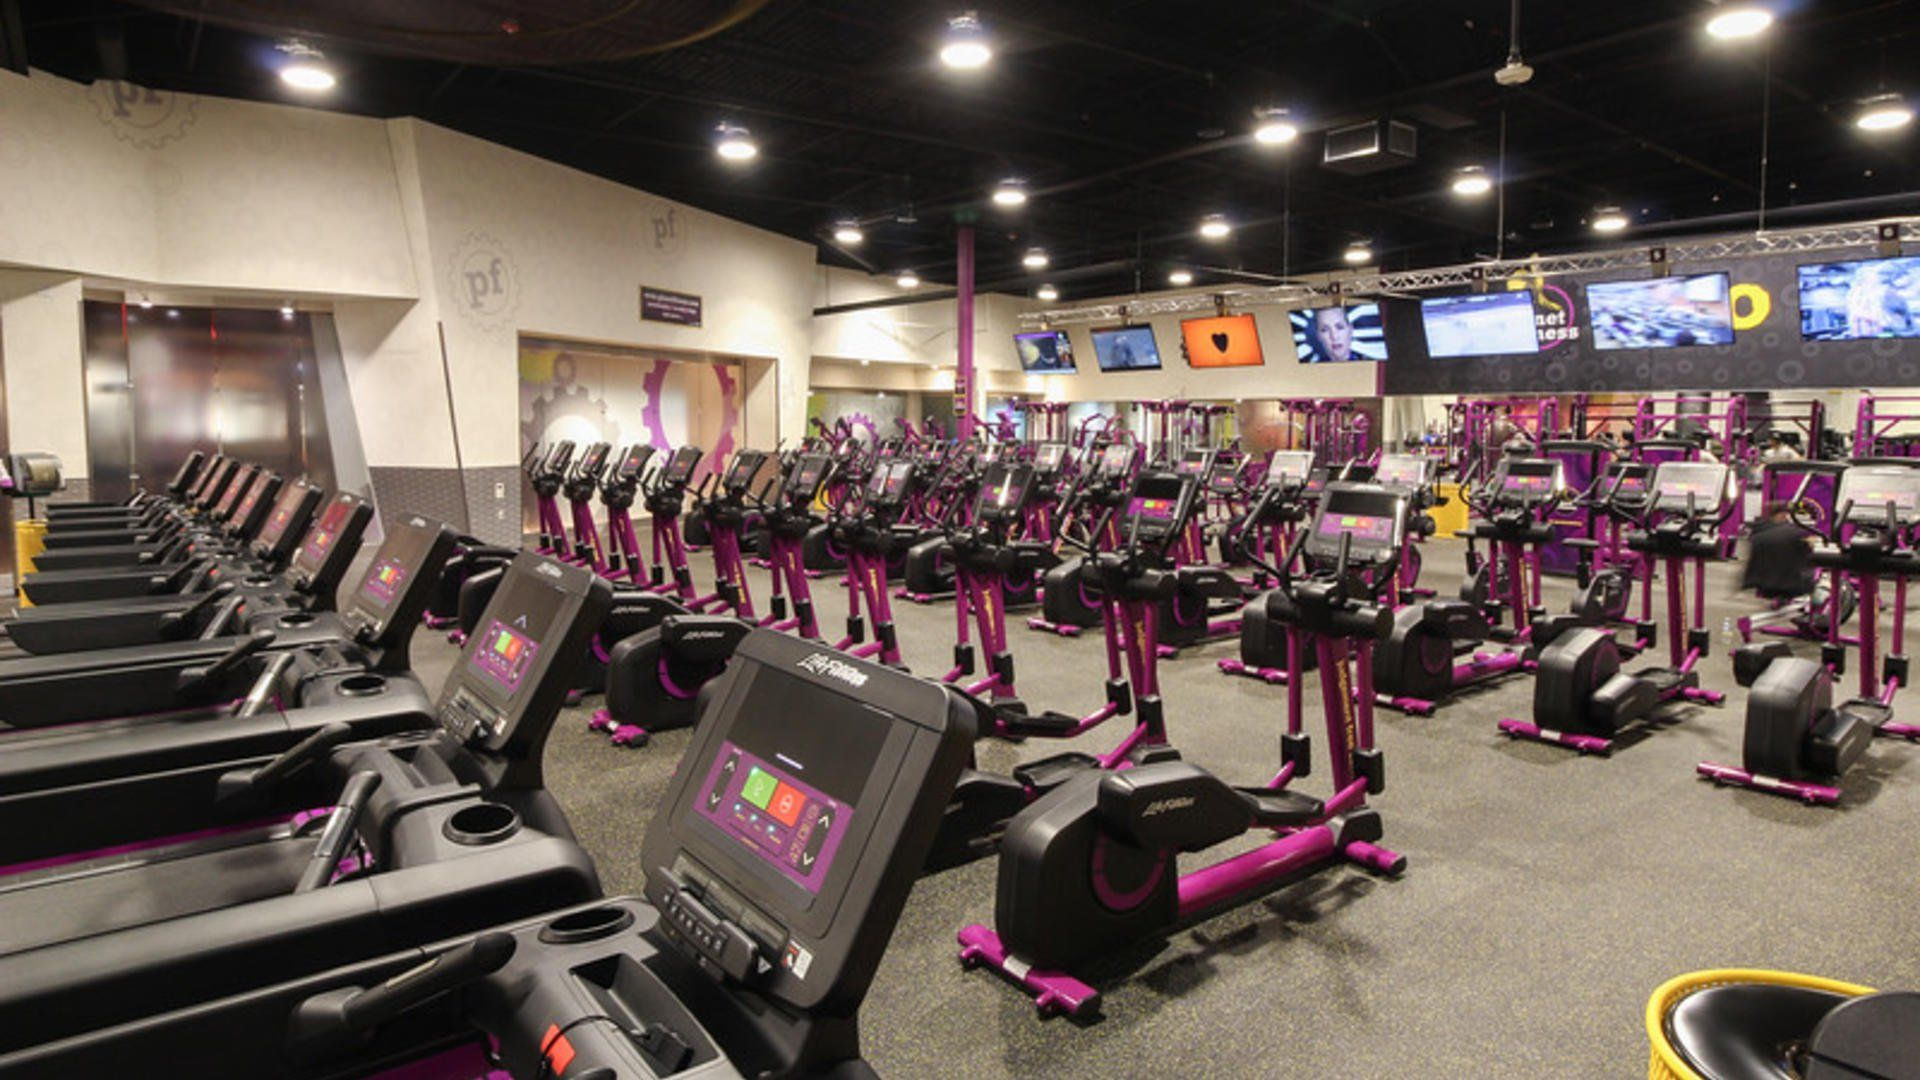 What Is The Lunk Alarm And How Do People Feel About It Planet Fitness Workout Planet Fitness Rules Biking Workout